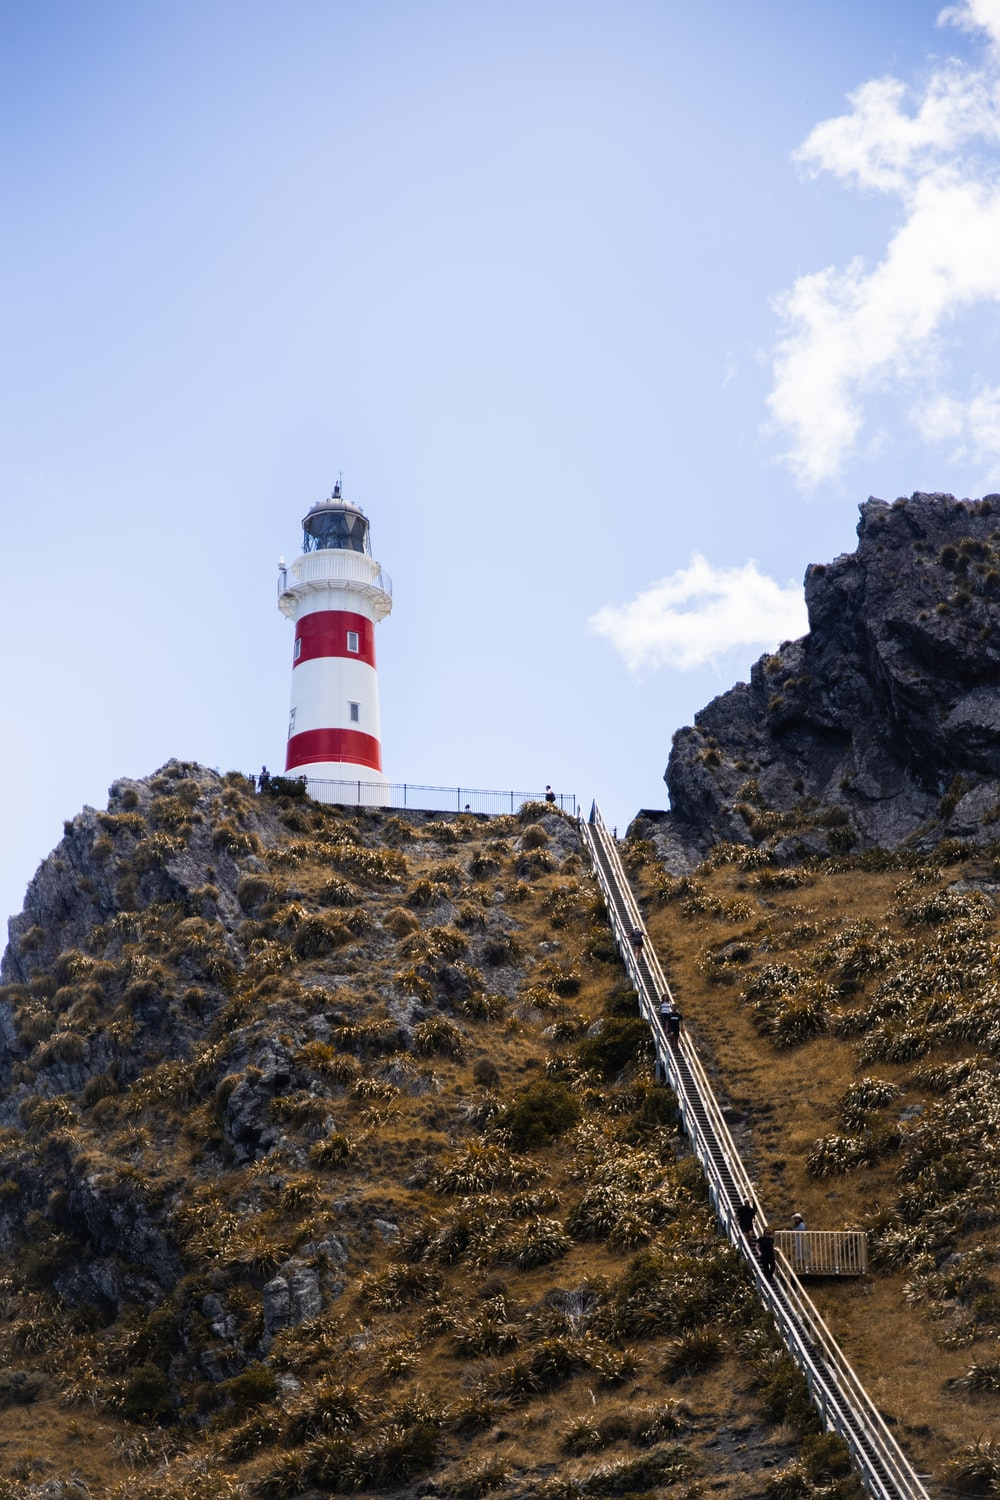 white and red lighthouse on brown rocky mountain under white cloudy sky during daytime